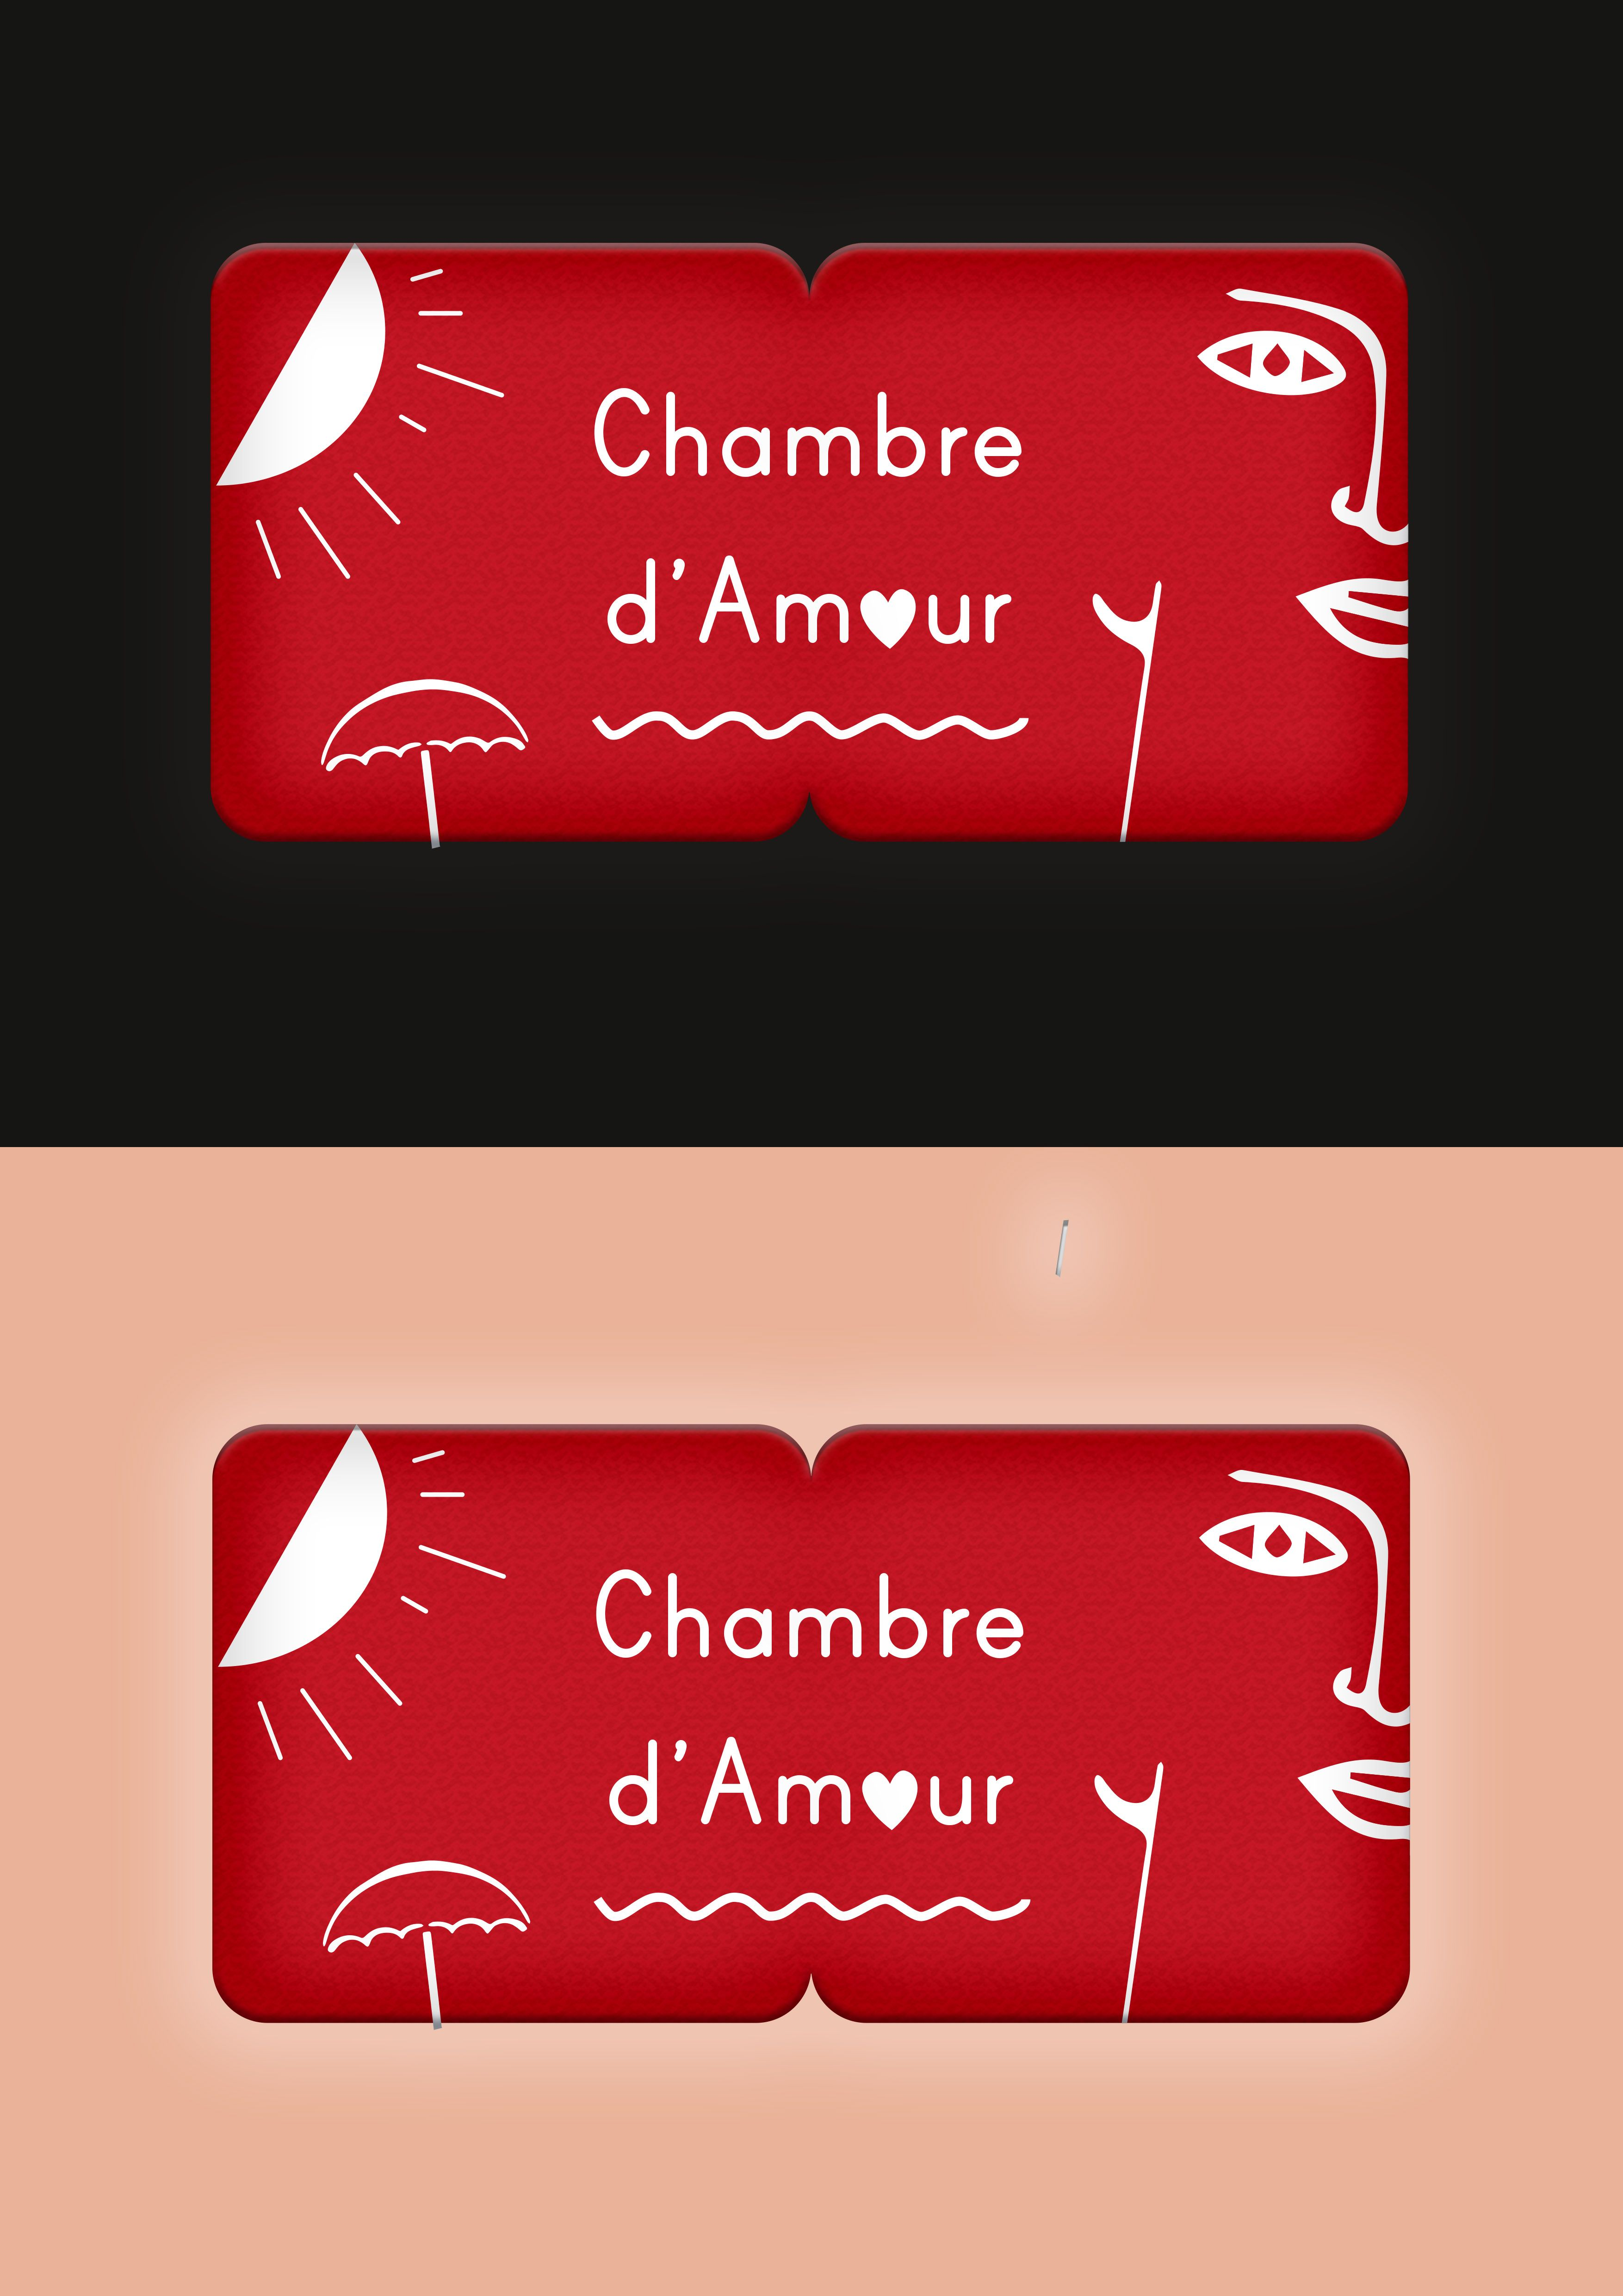 Chambre d amour Anglet Logo